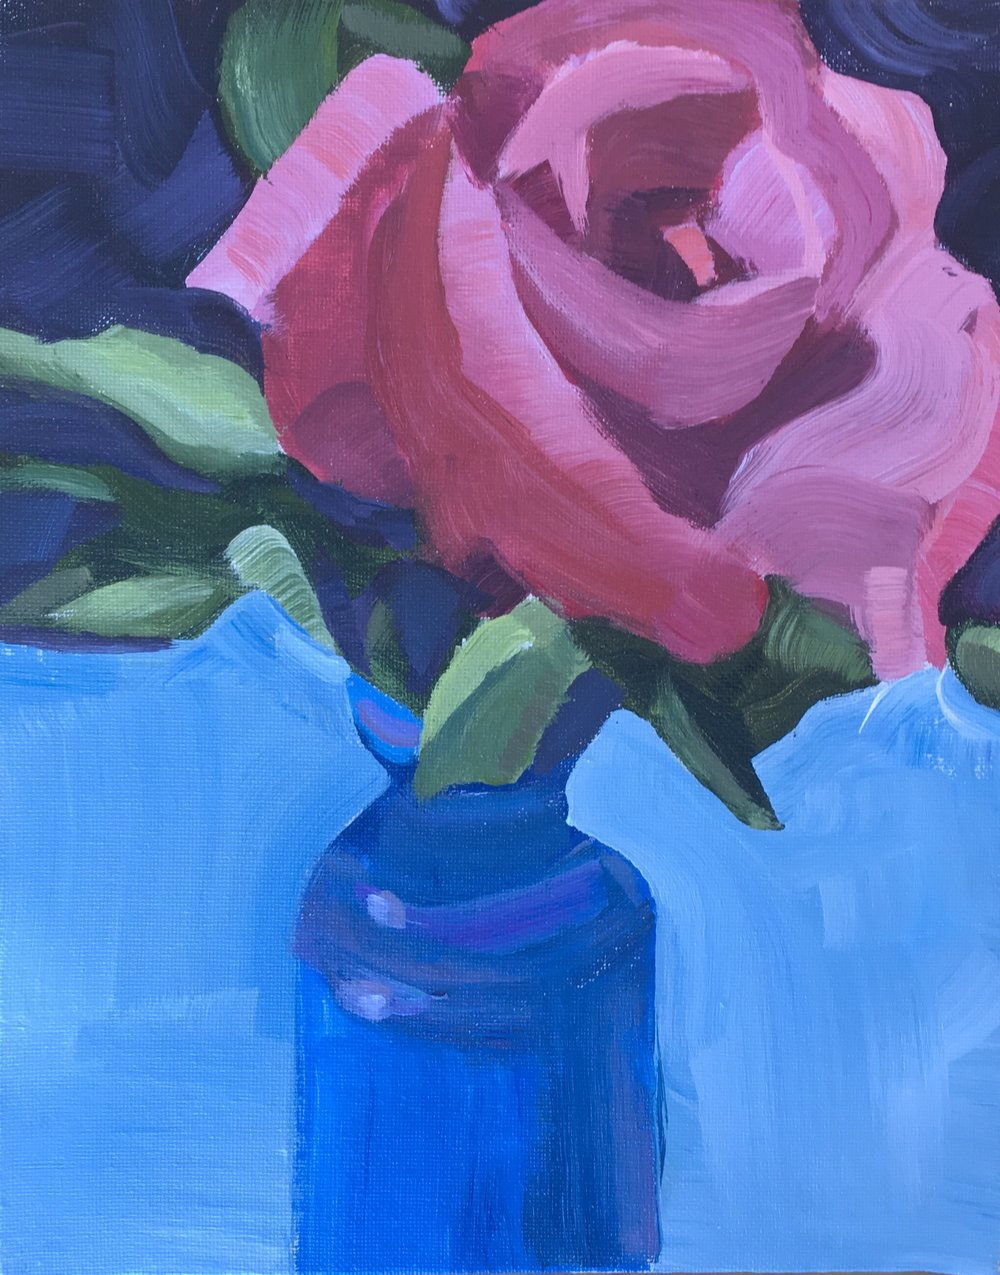 """183 Rose #1, Acrylic on 8""""x10"""" canvas panel, 45-minute painting"""